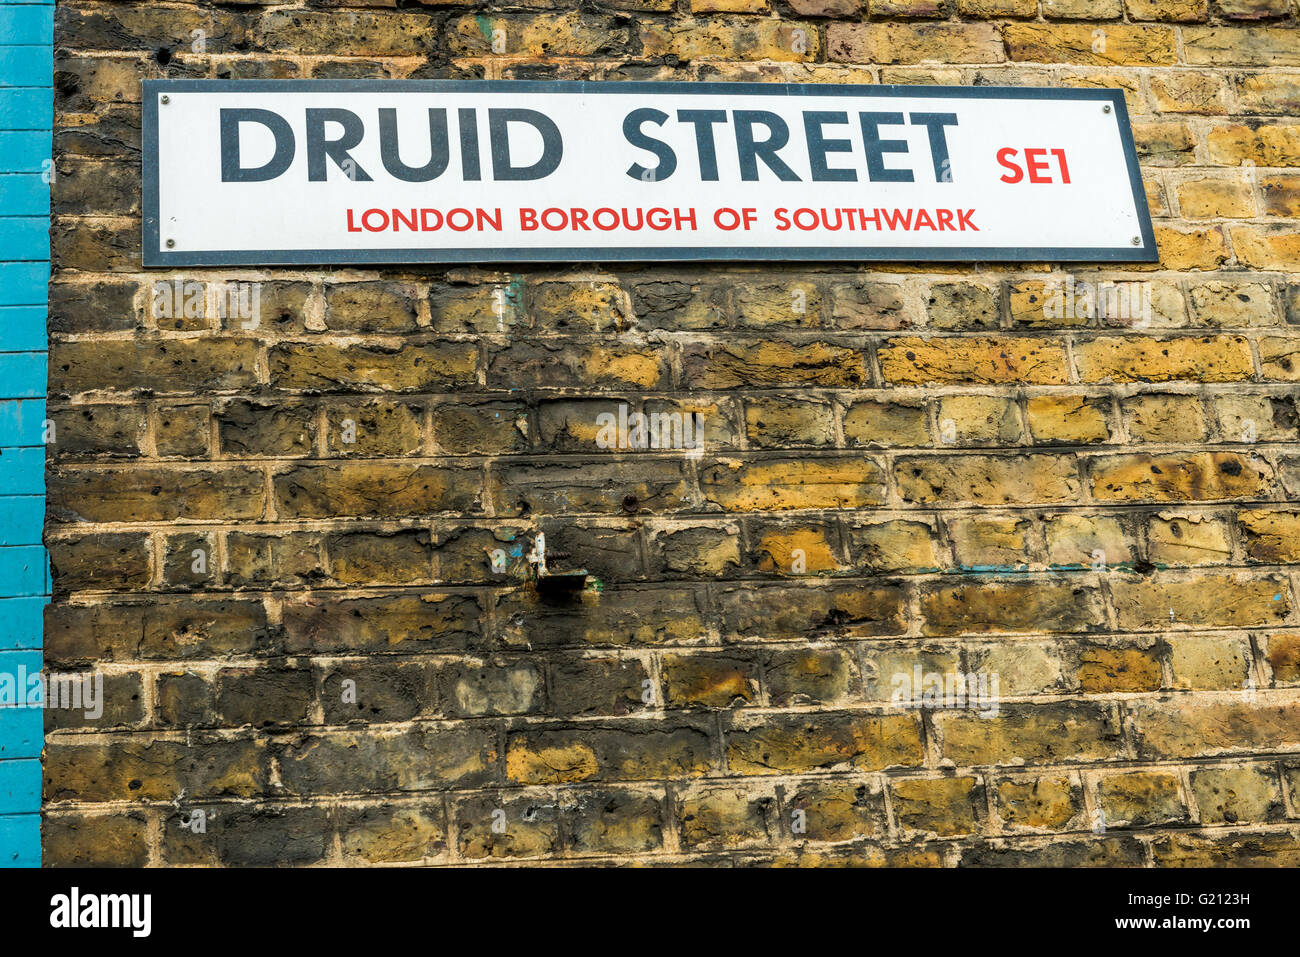 London, United Kingdom - April 30, 2016: Druid Street market in Bermondsey (located in railway arches). Street sign - Stock Image